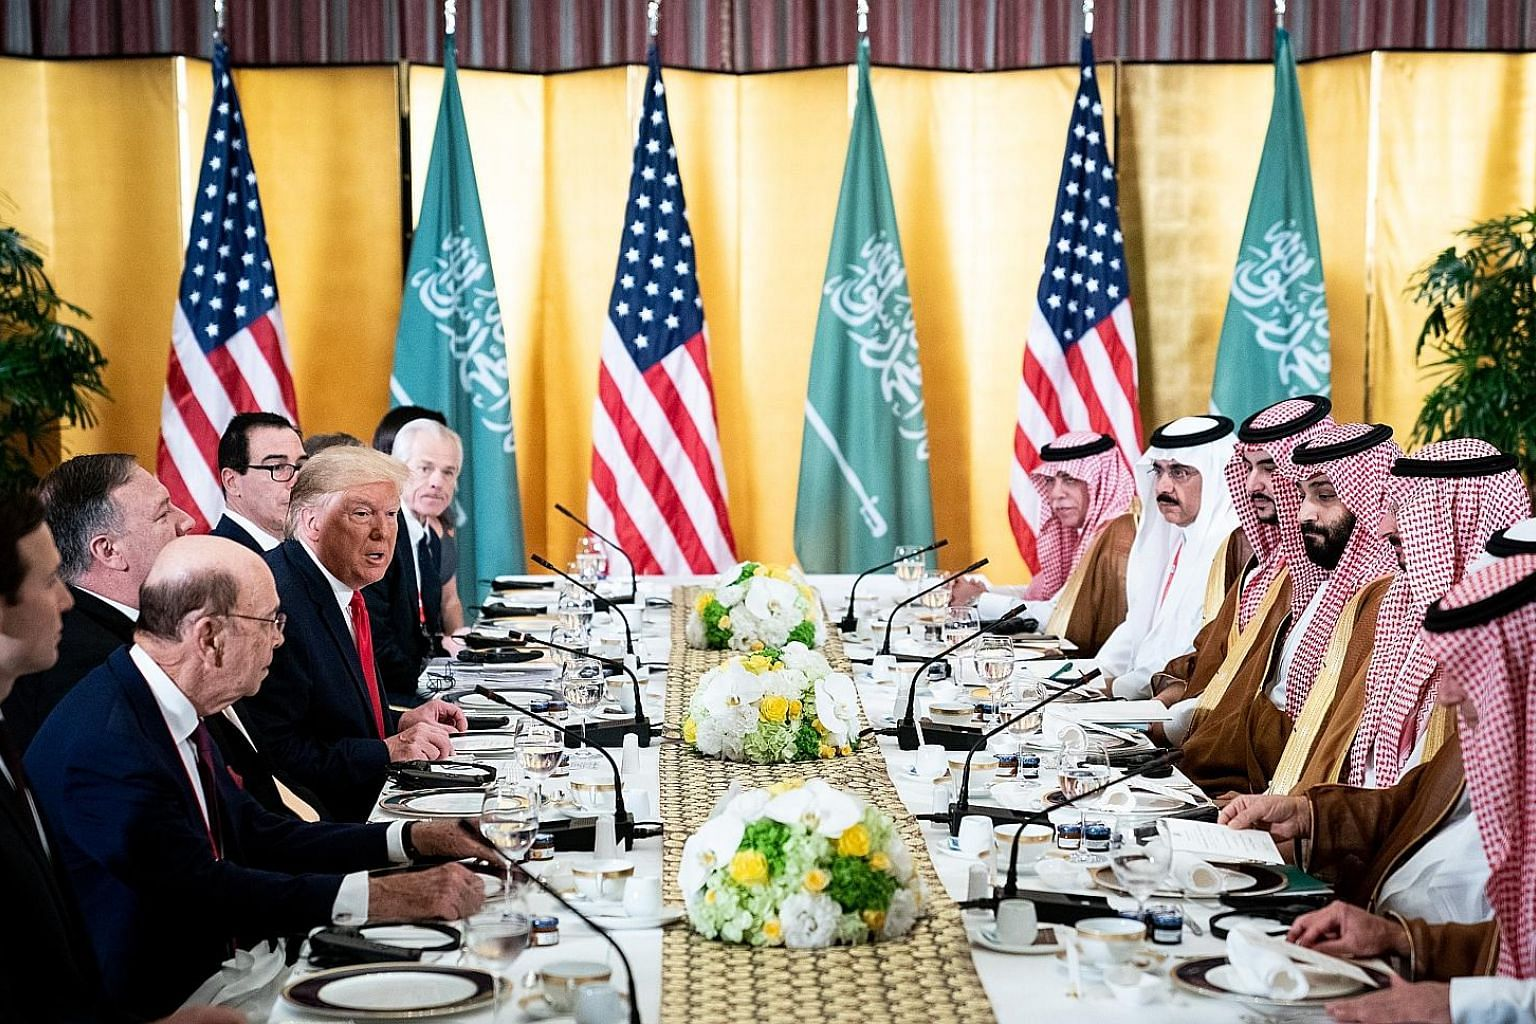 US President Donald Trump meeting a Saudi delegation led by Crown Prince Mohammed bin Salman (across from Mr Trump) at the Group of 20 summit in Osaka, Japan, in June.